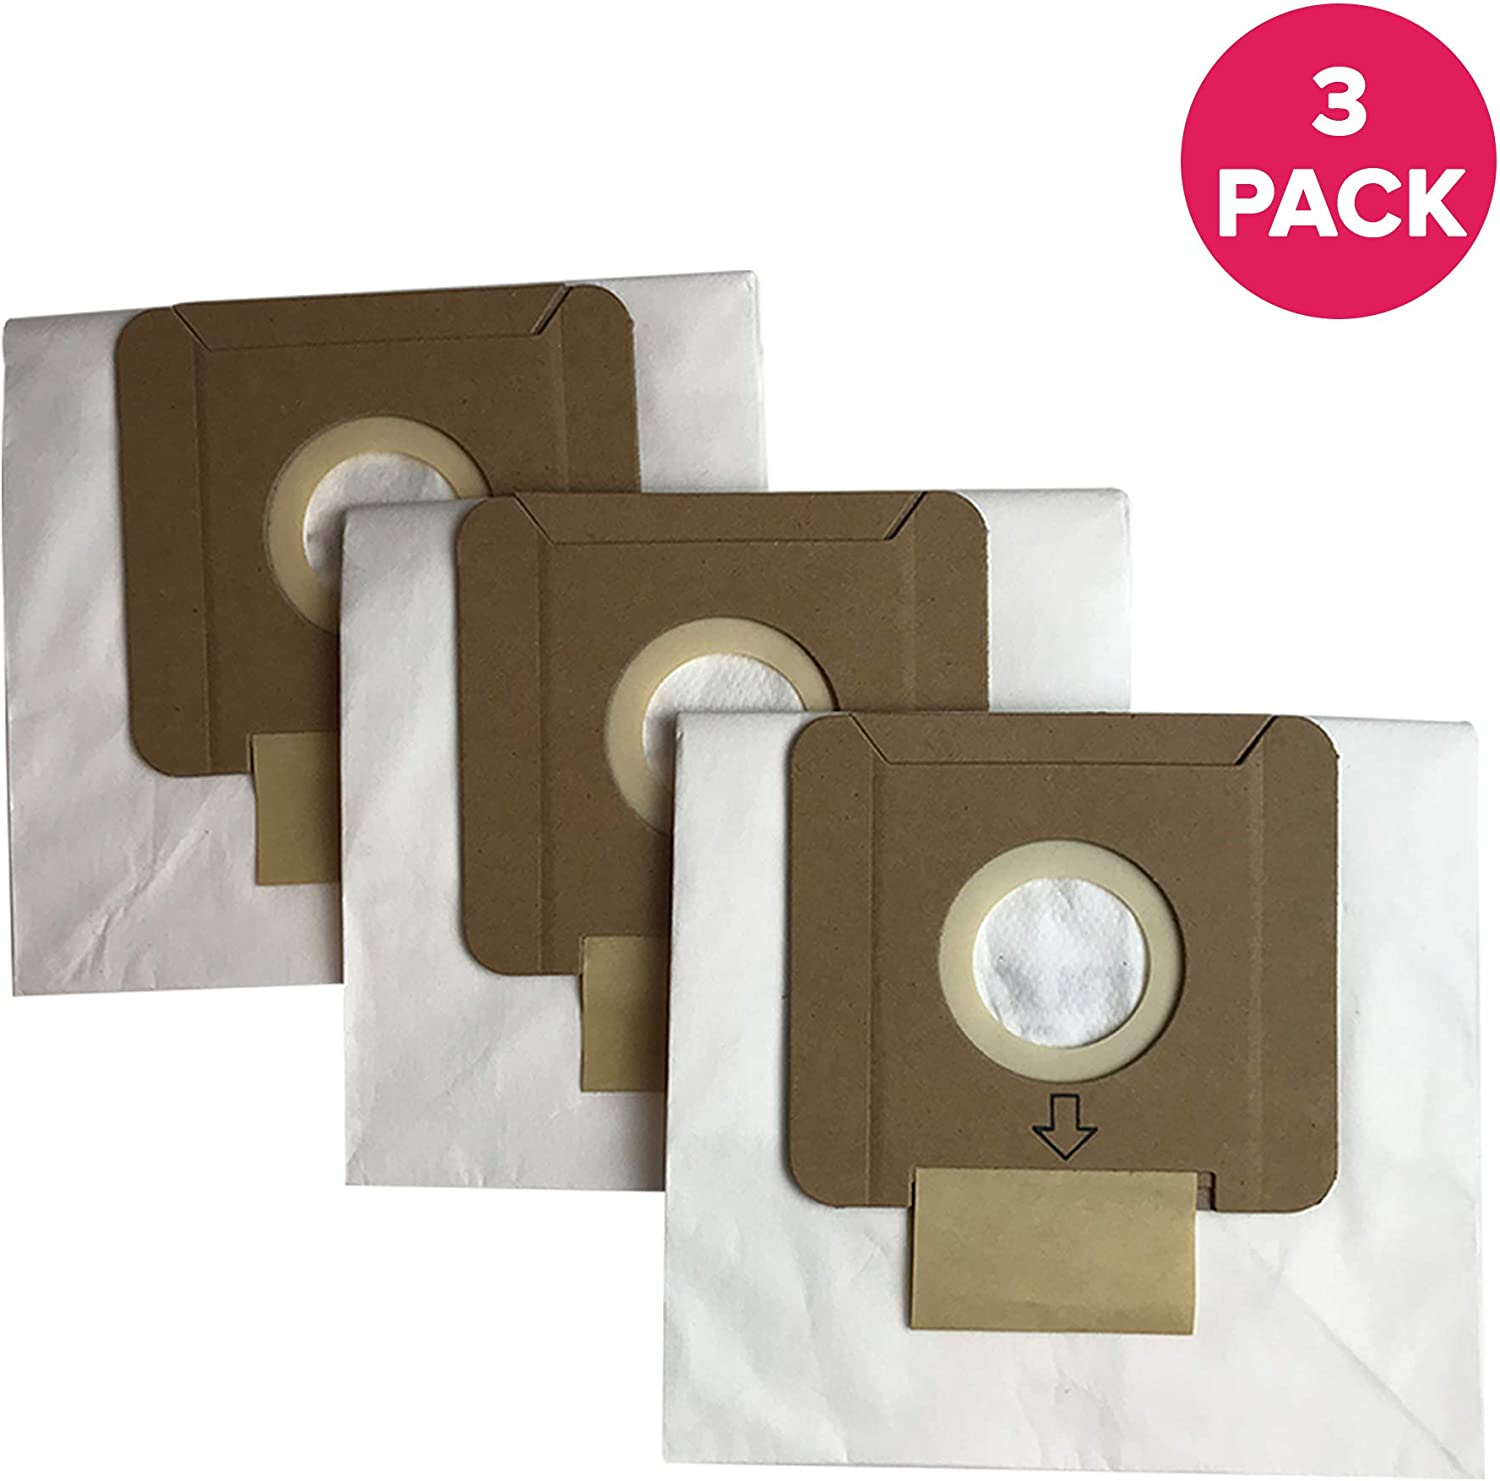 Crucial Vacuum Replacement Vacuum Bags Compatible with Dirt Devil Part # AD10030,3-04235-00,304235001,83-2450-06 & Models Type O,SD30040BR,SD30040CDI,SD30040BB,SD30040CBT,SD30040CS (3 Pack)